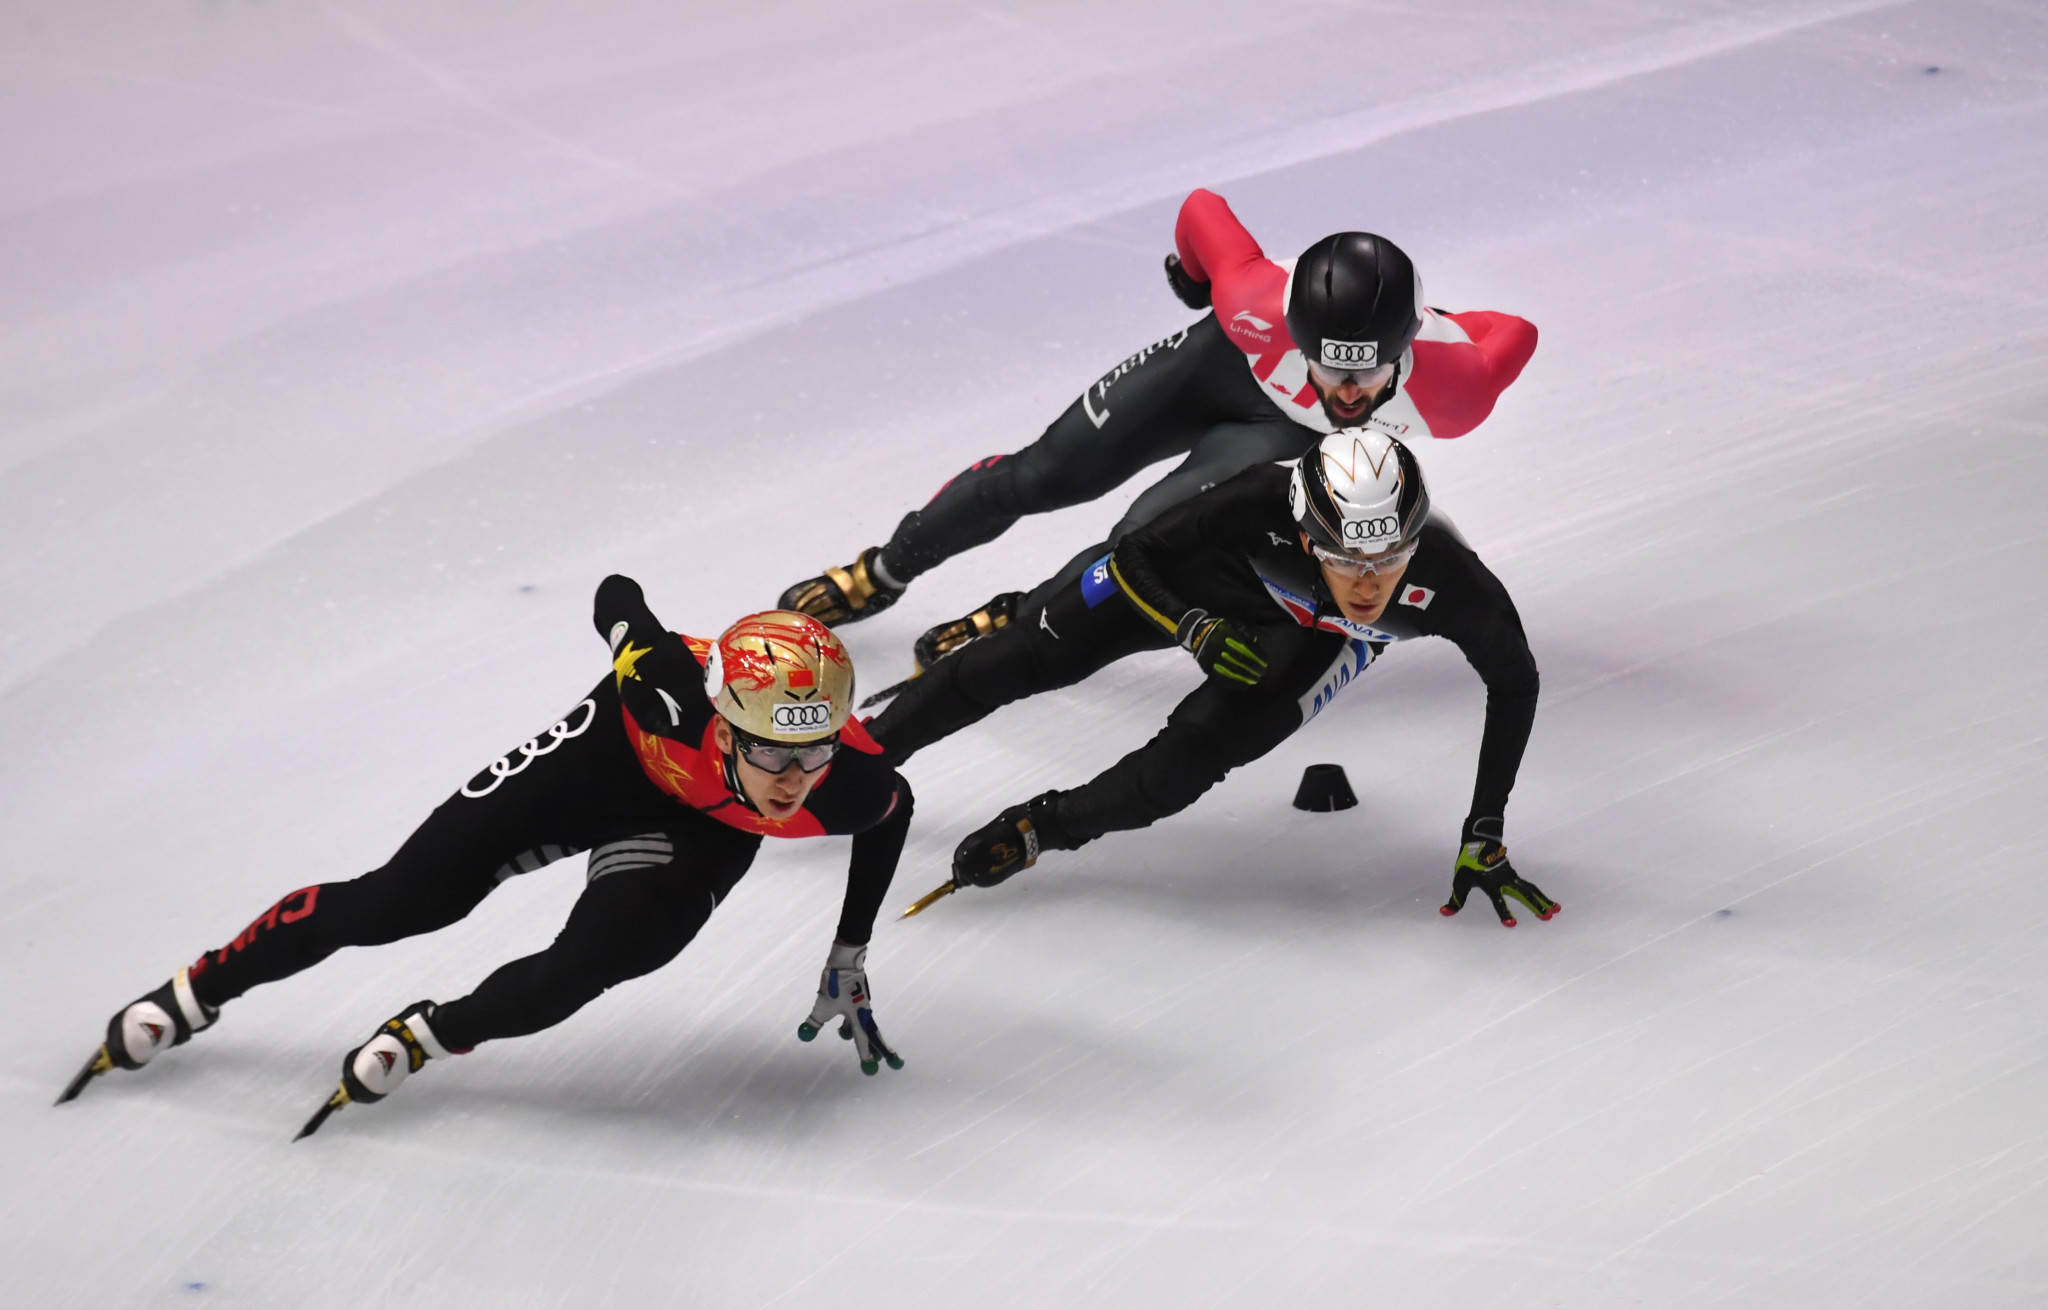 Olympic silver medallist Wu qualifies quickest at ISU Short Track World Cup